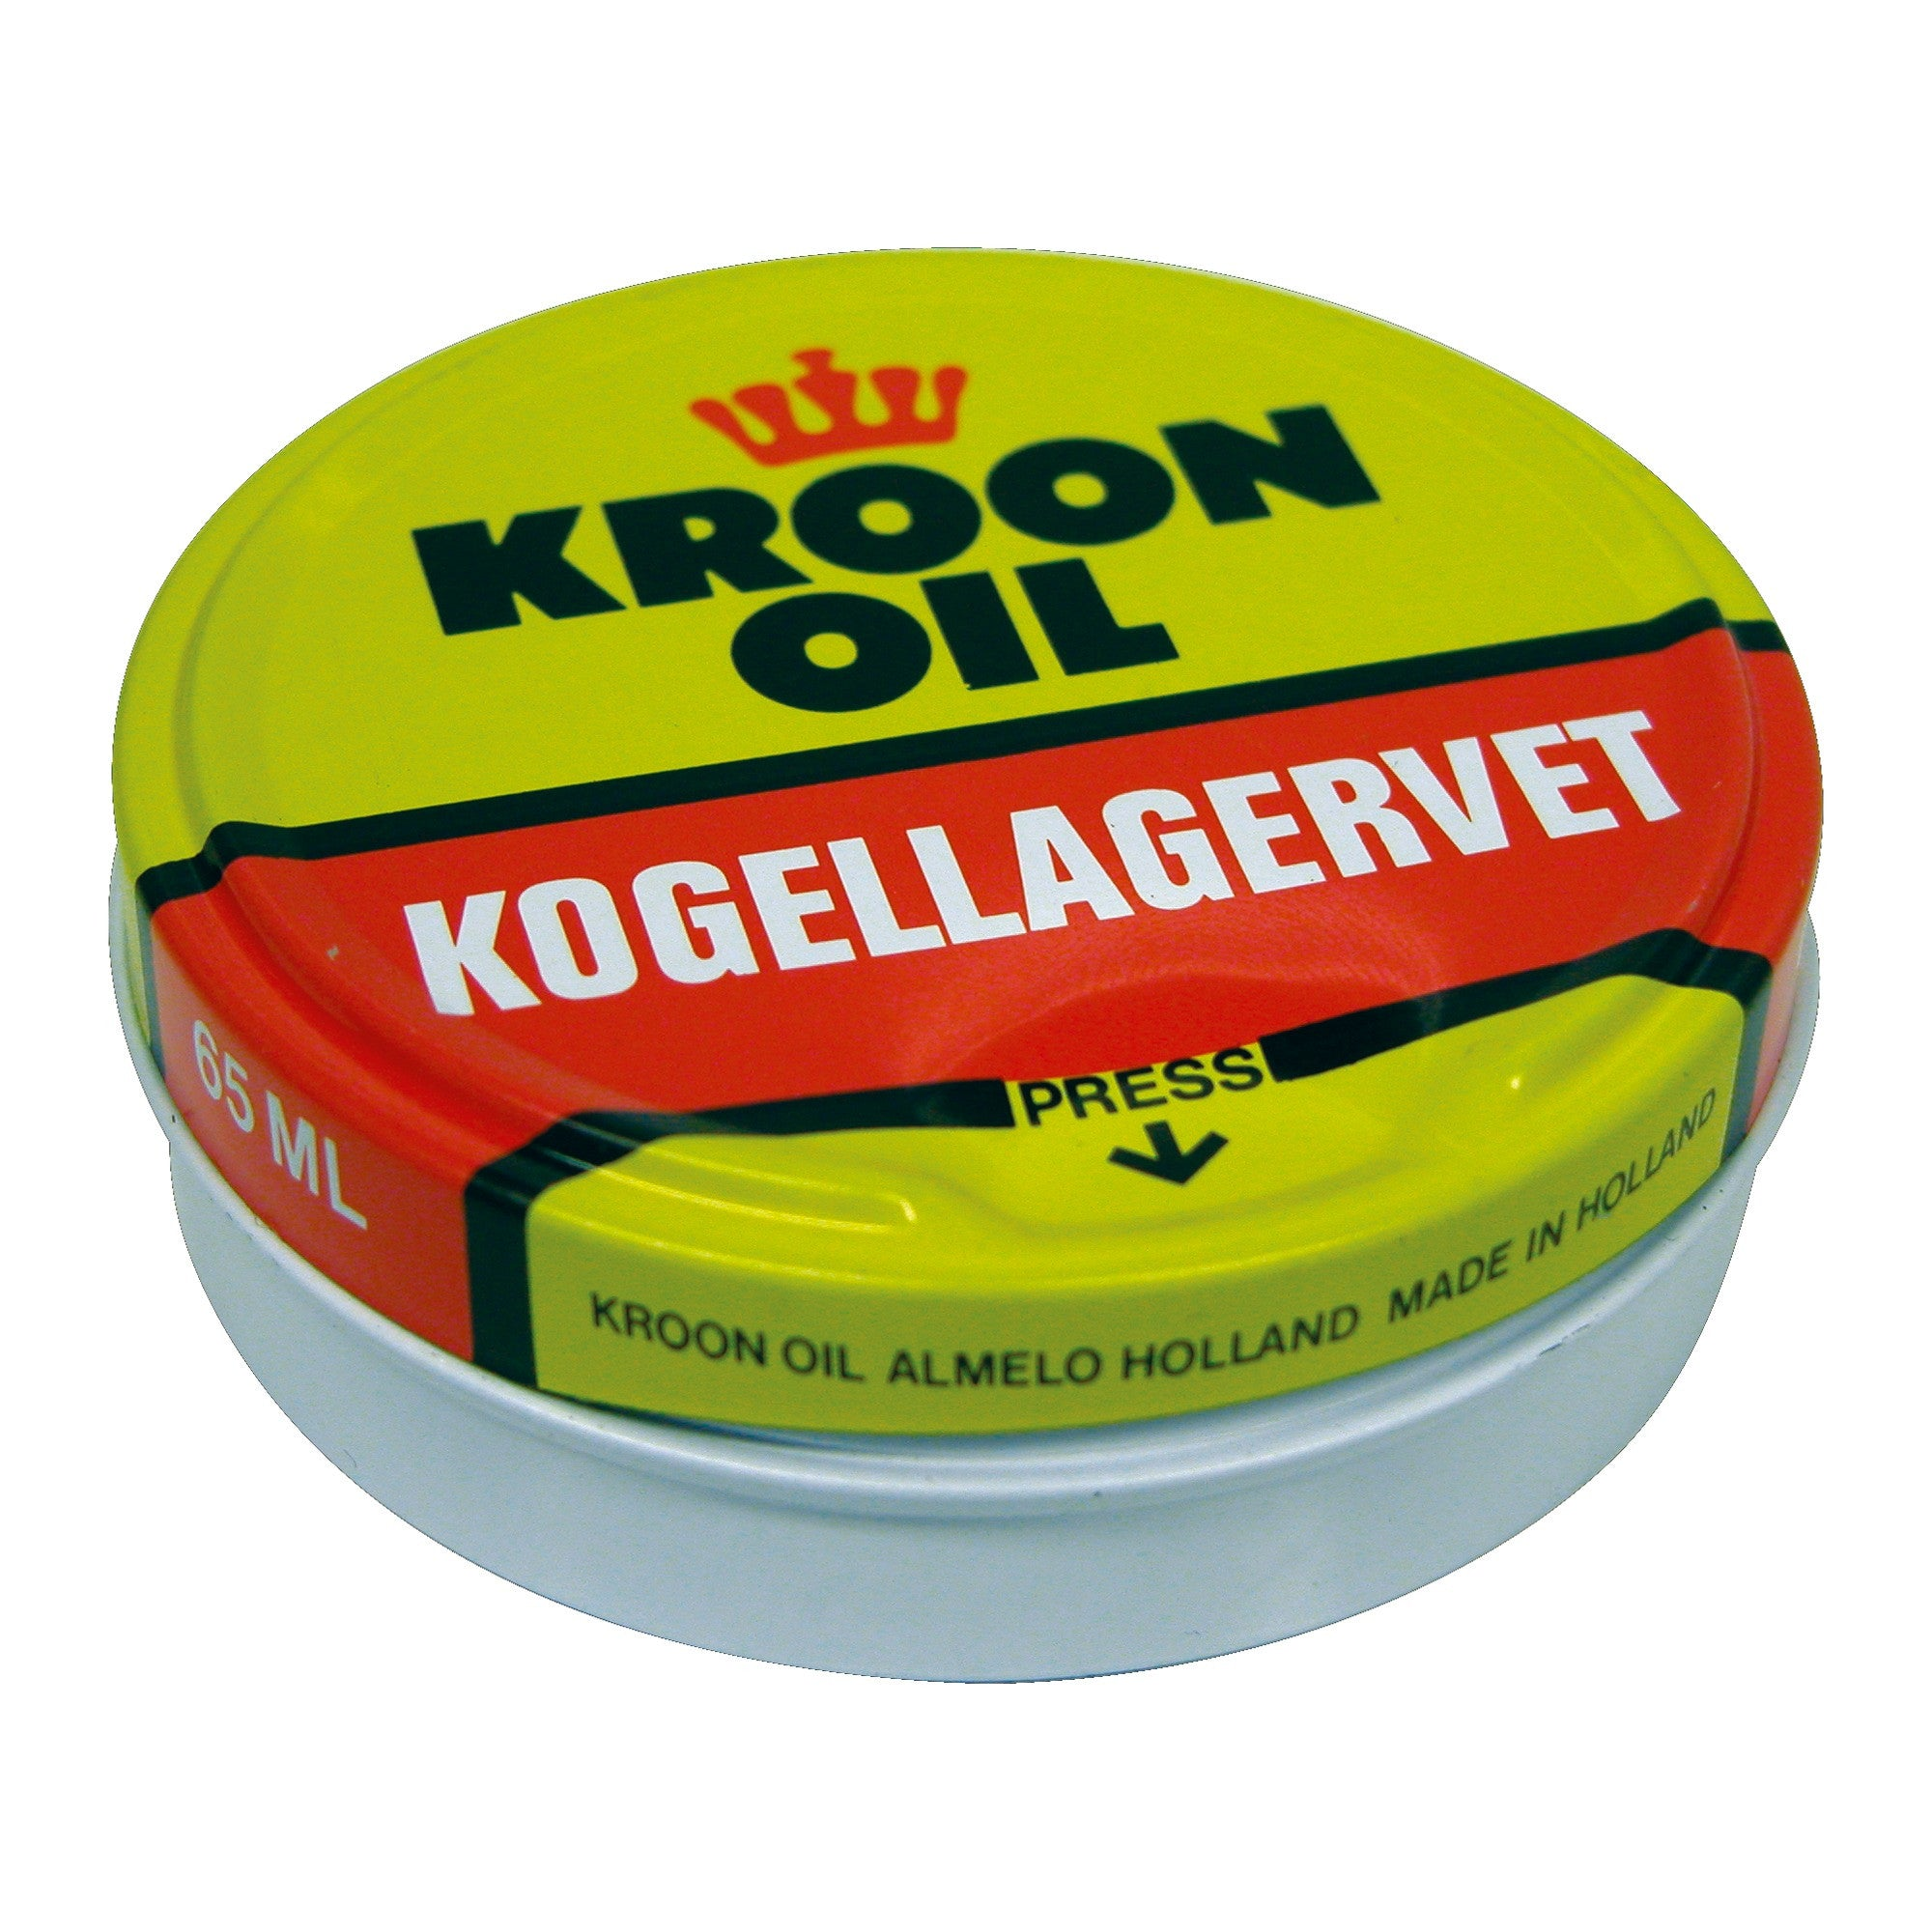 Kroon Oil - Kogellager vet (65ml)